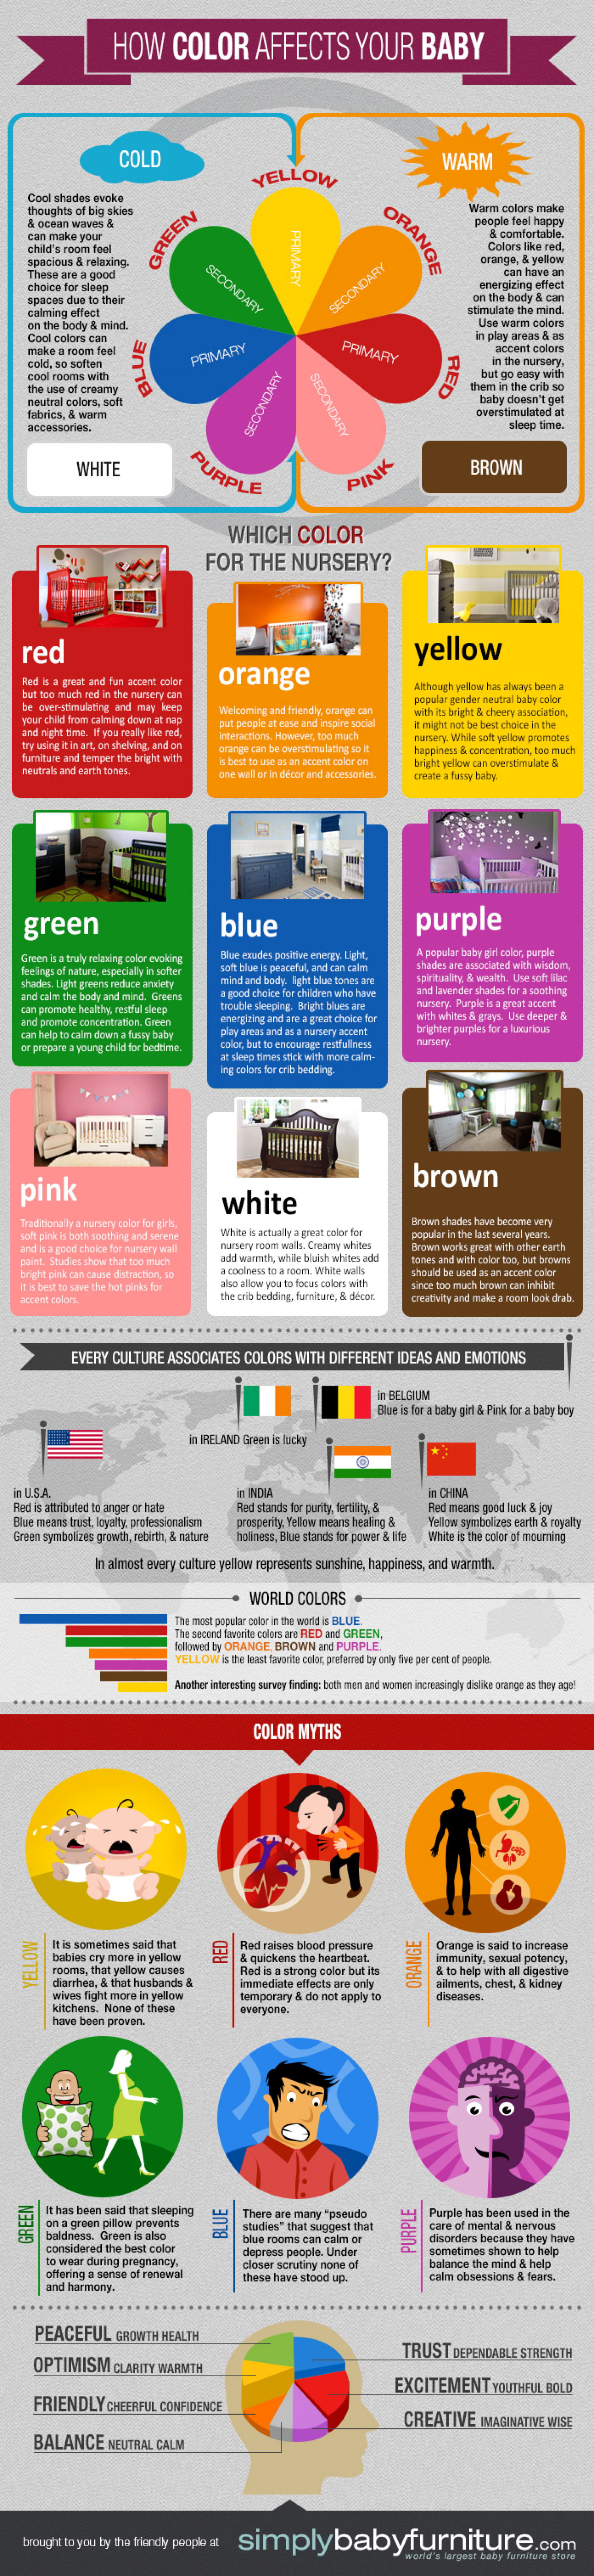 how color affects your baby 39 s mood infographic